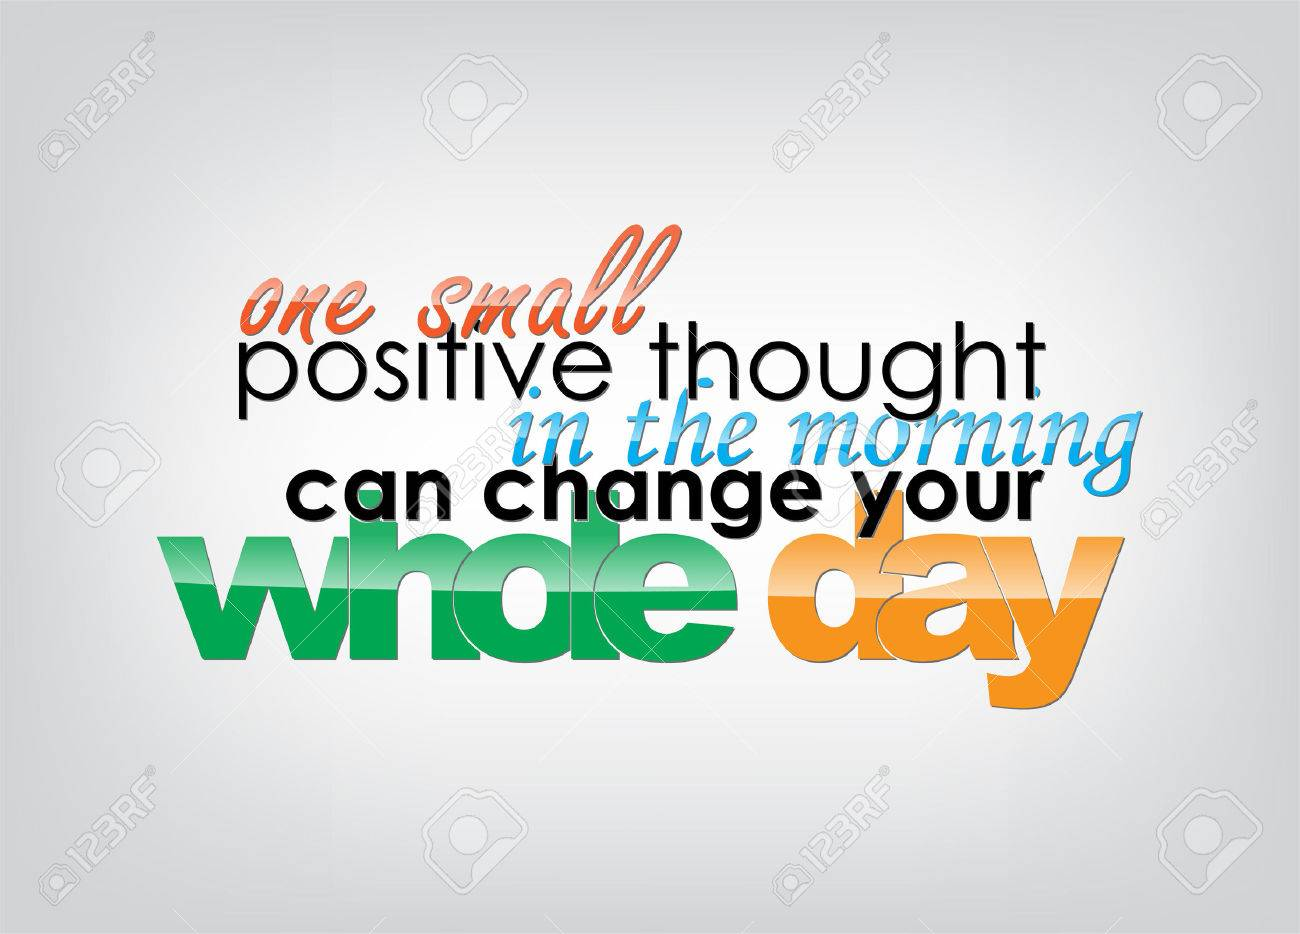 Thought Of The Day Motivational One Small Positive Thought In The Morning Can Change Your Whole